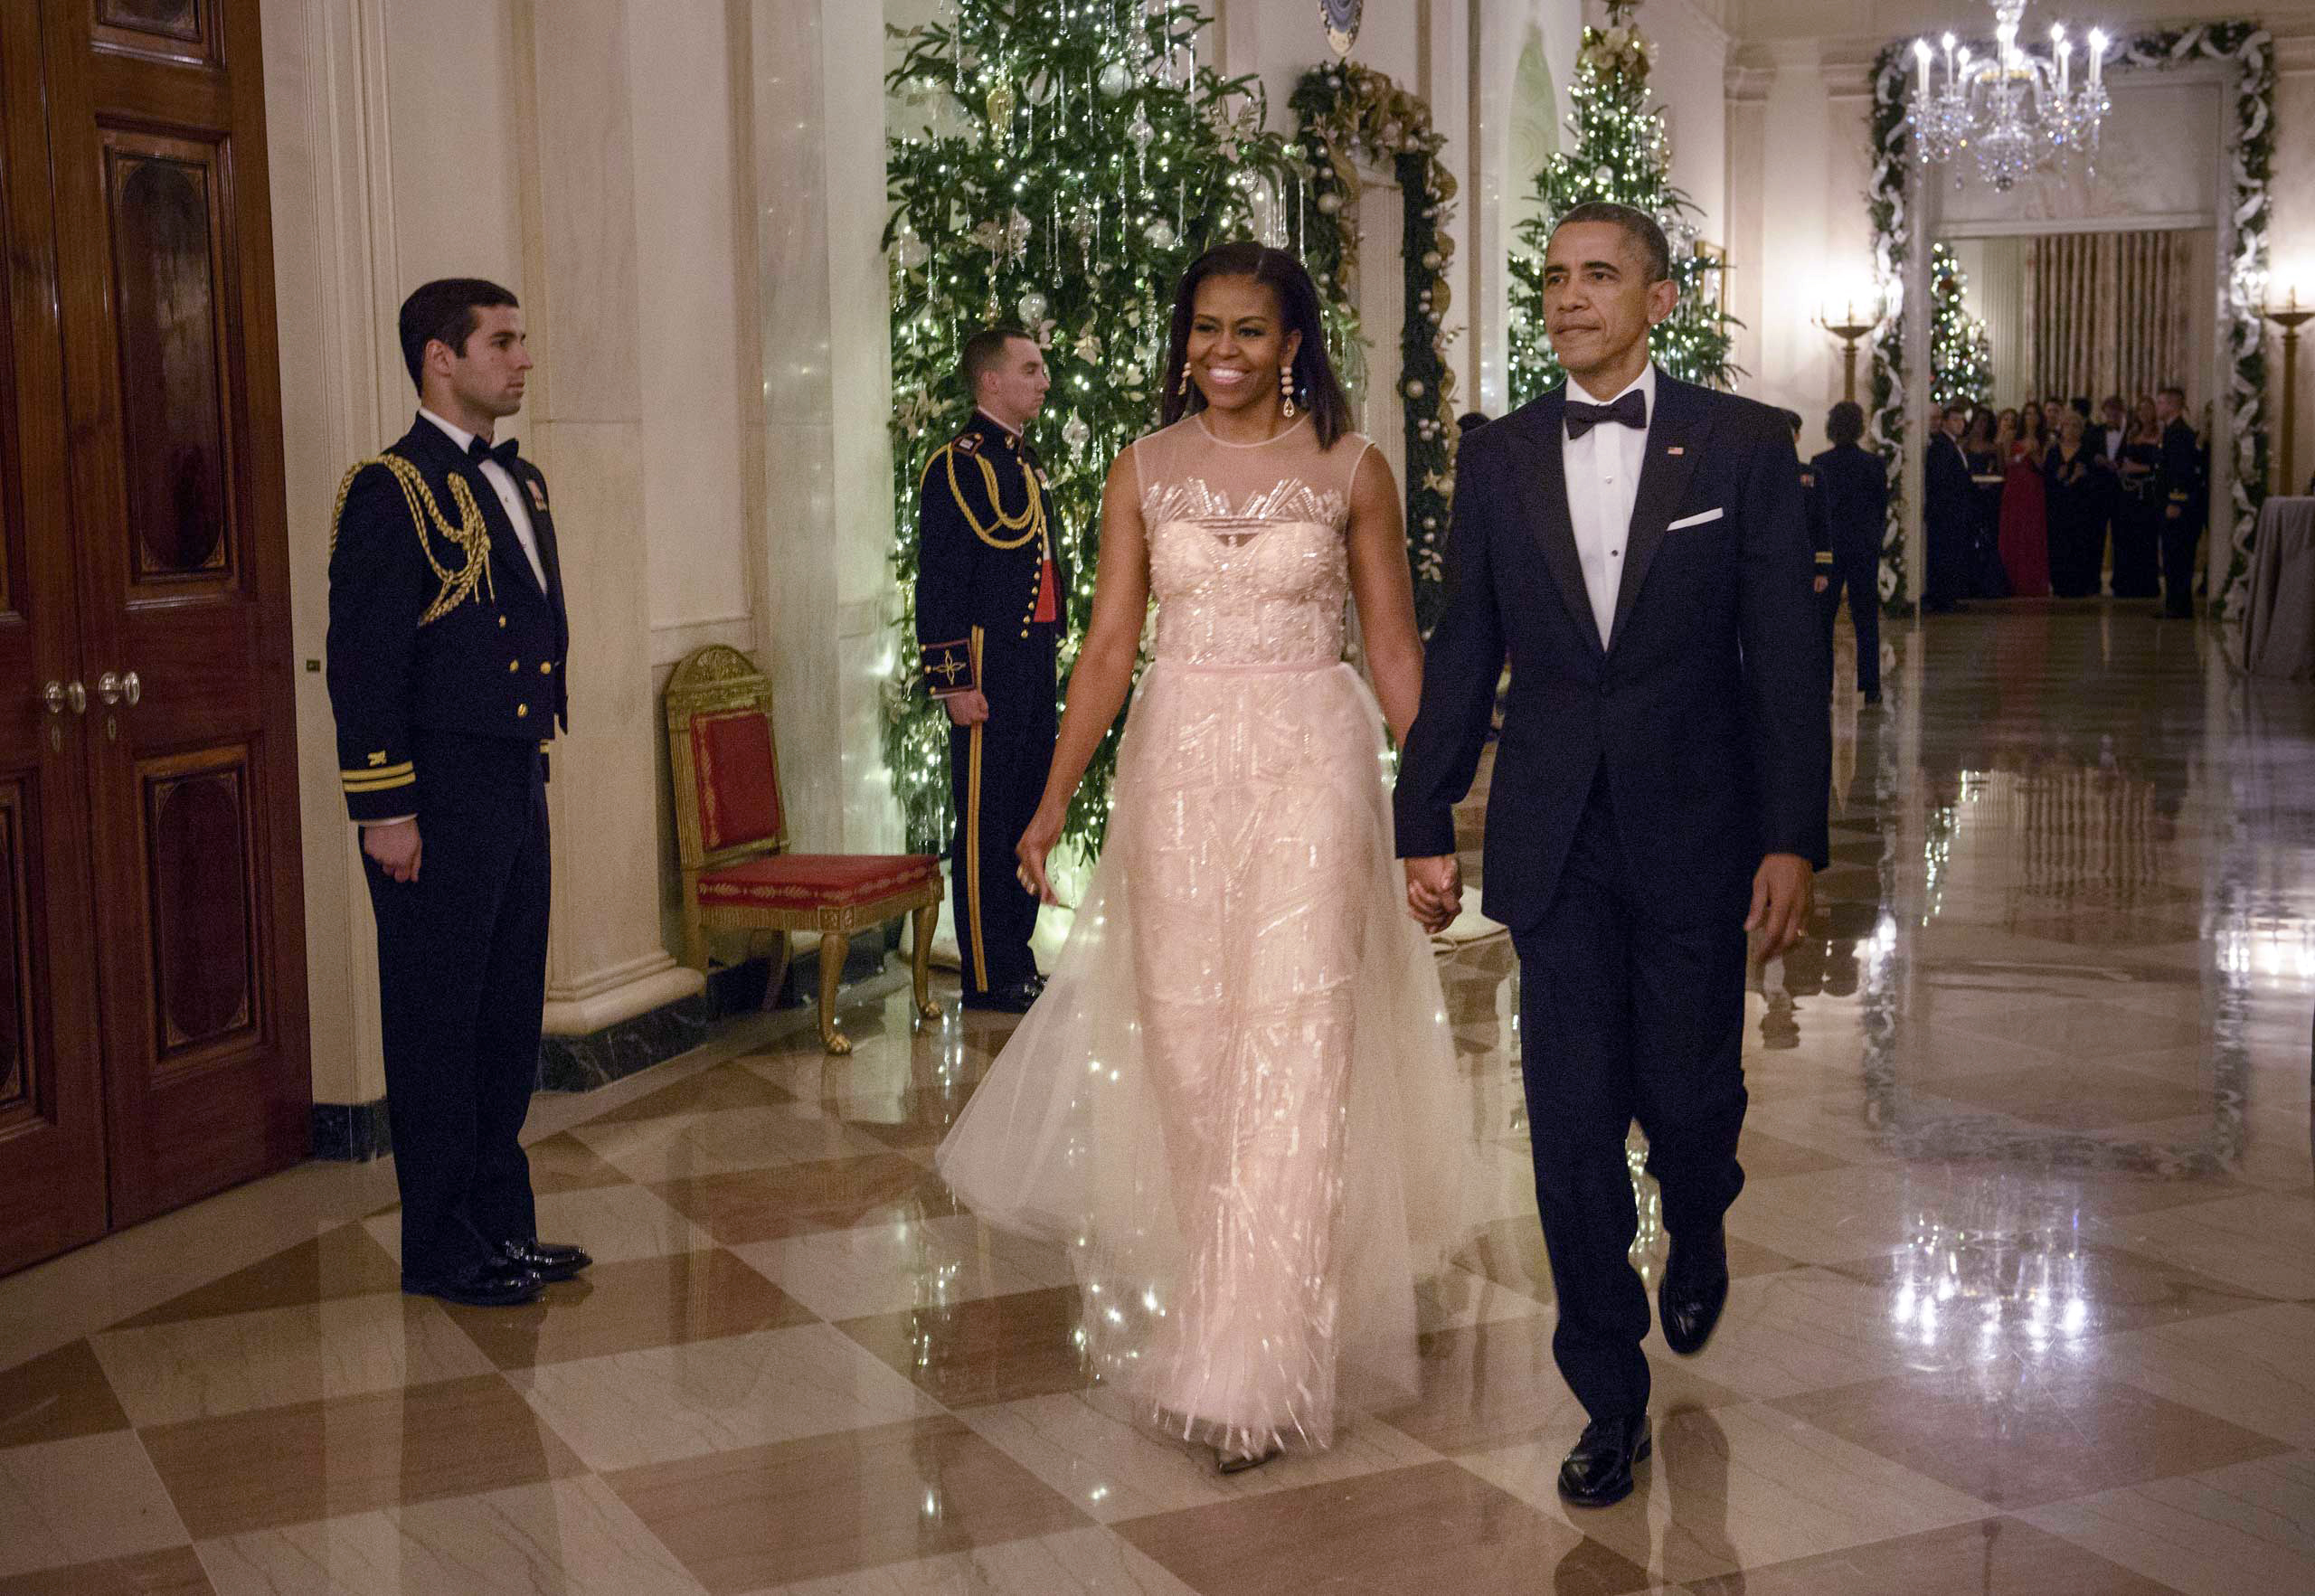 Ending the year in style, and mirroring the White House Christmas decorations, Obama wore this dress by Monique Lhuiller to the Kennedy Center honors in December.